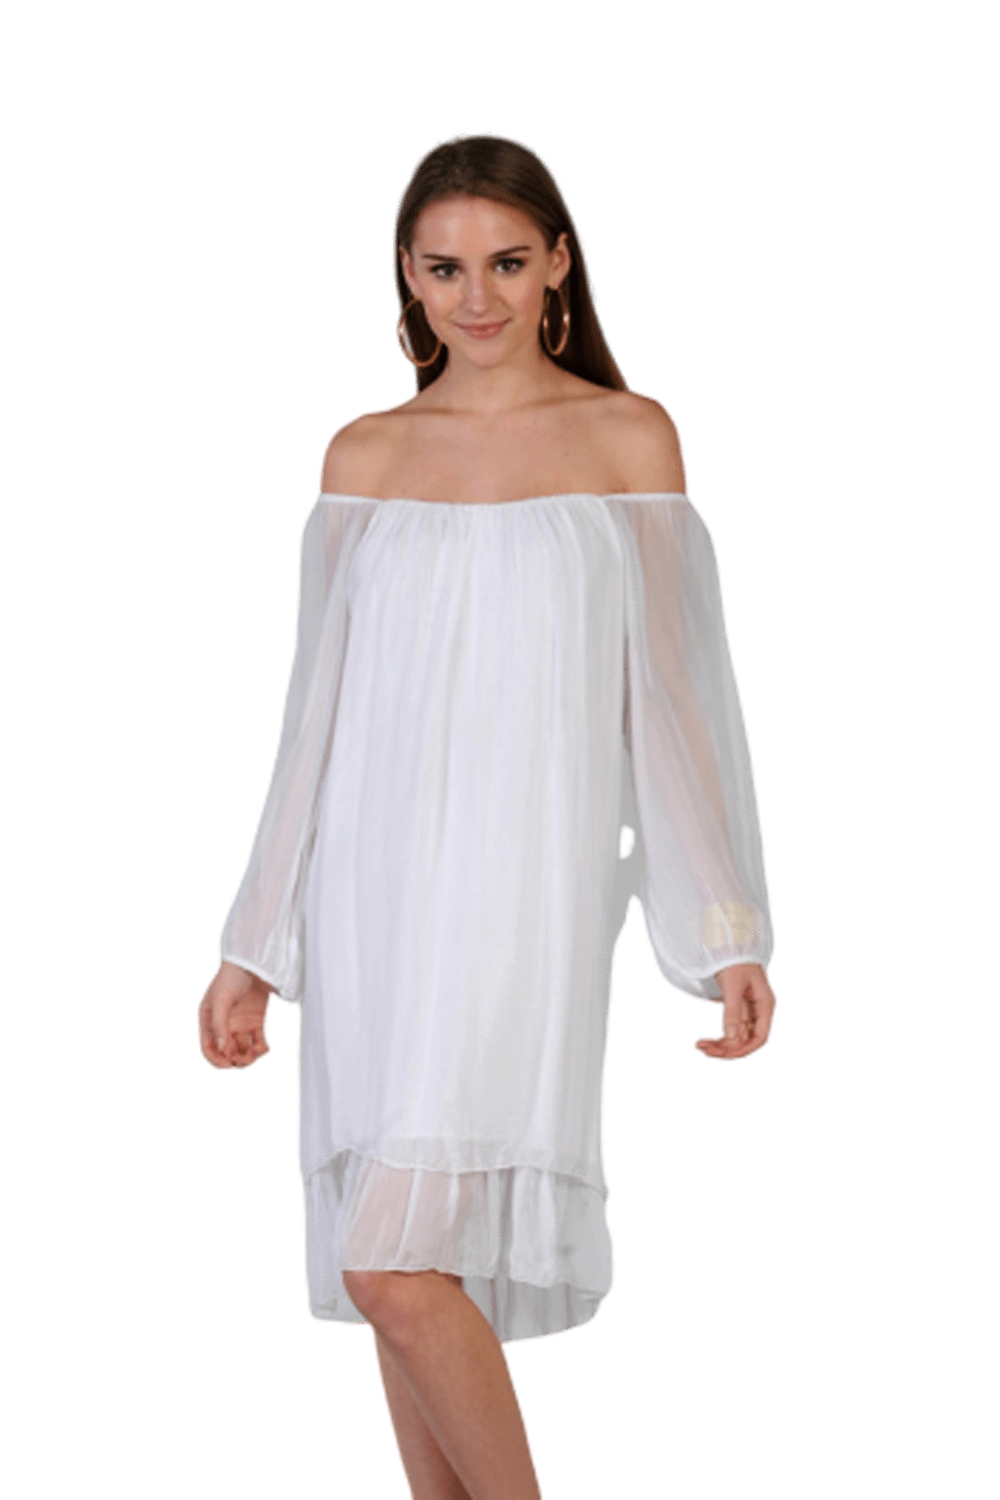 shop-sofia Sofia White Dress Sofia Collections Italian Silk Linen Satin